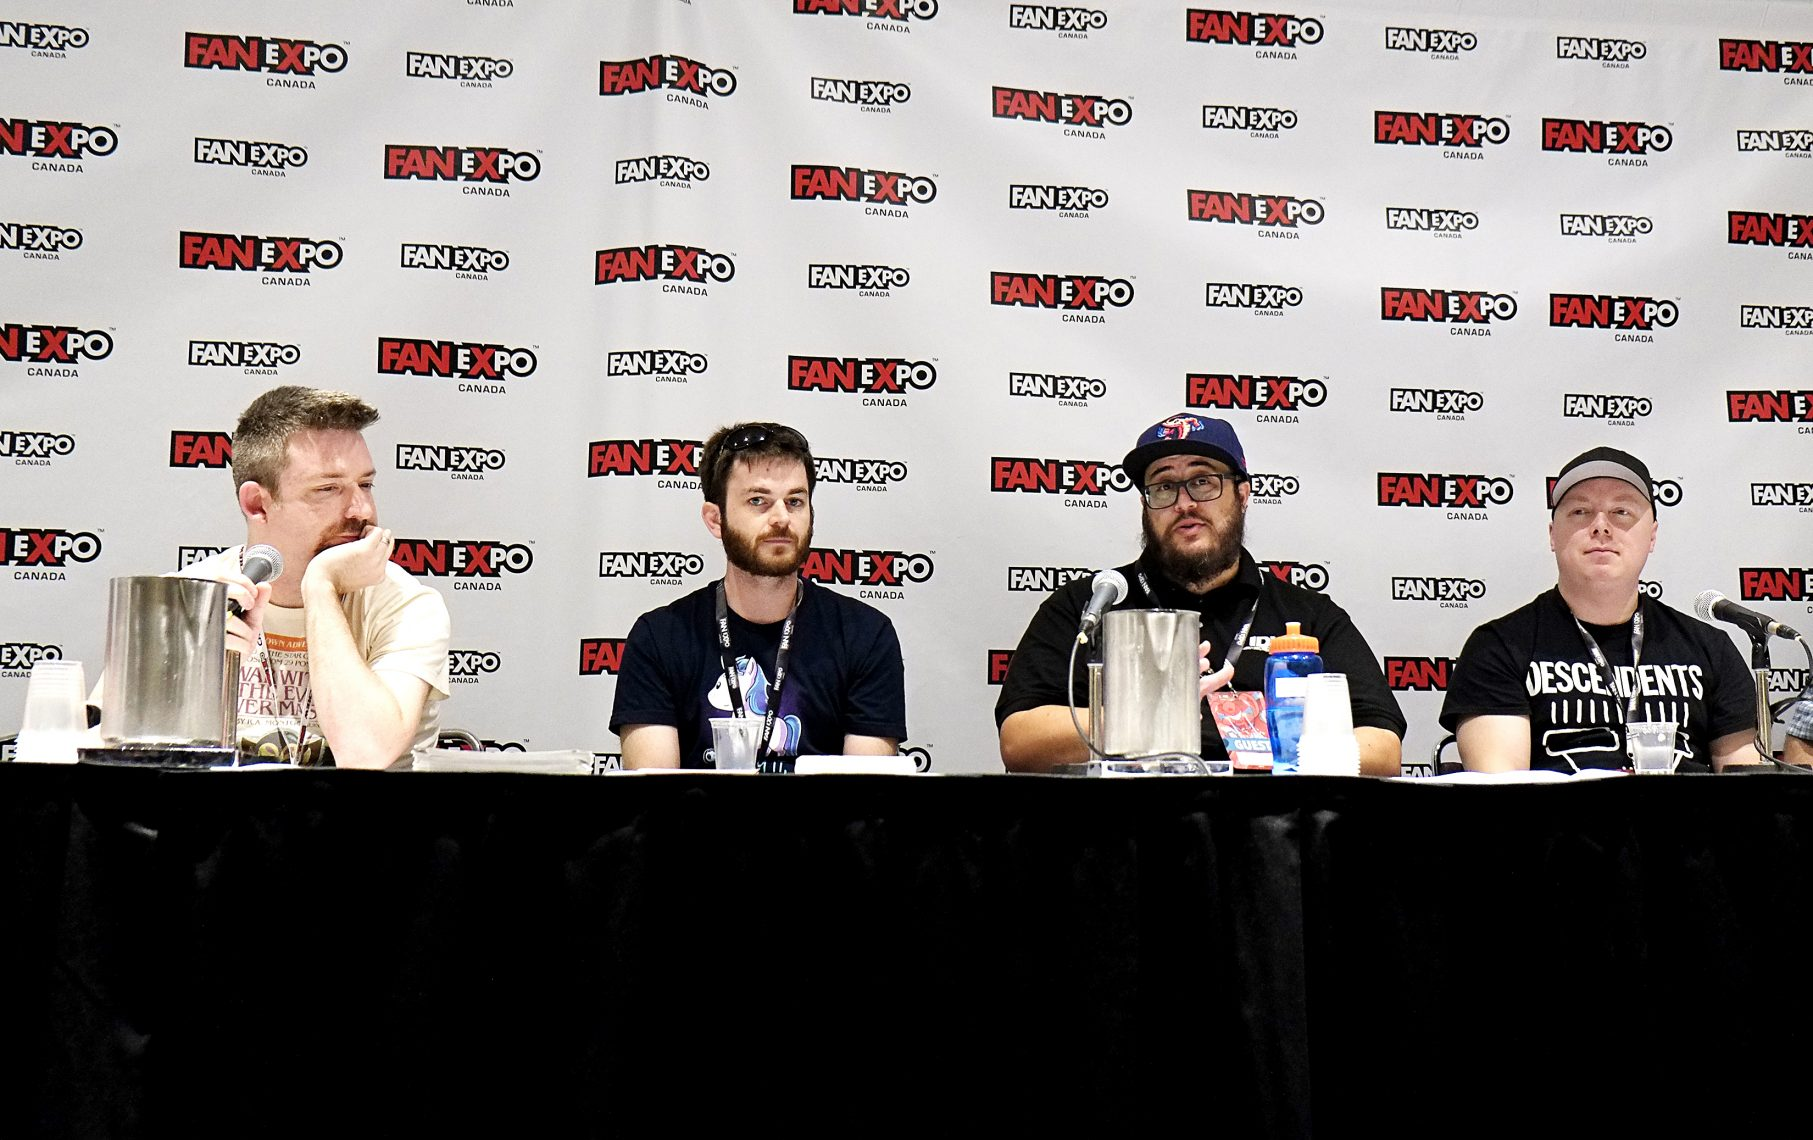 Fan Expo is a large-scale event that's been going for many years in Toronto. It's our equivalent of, say, San Diego Comic Con but scaled pretty down.